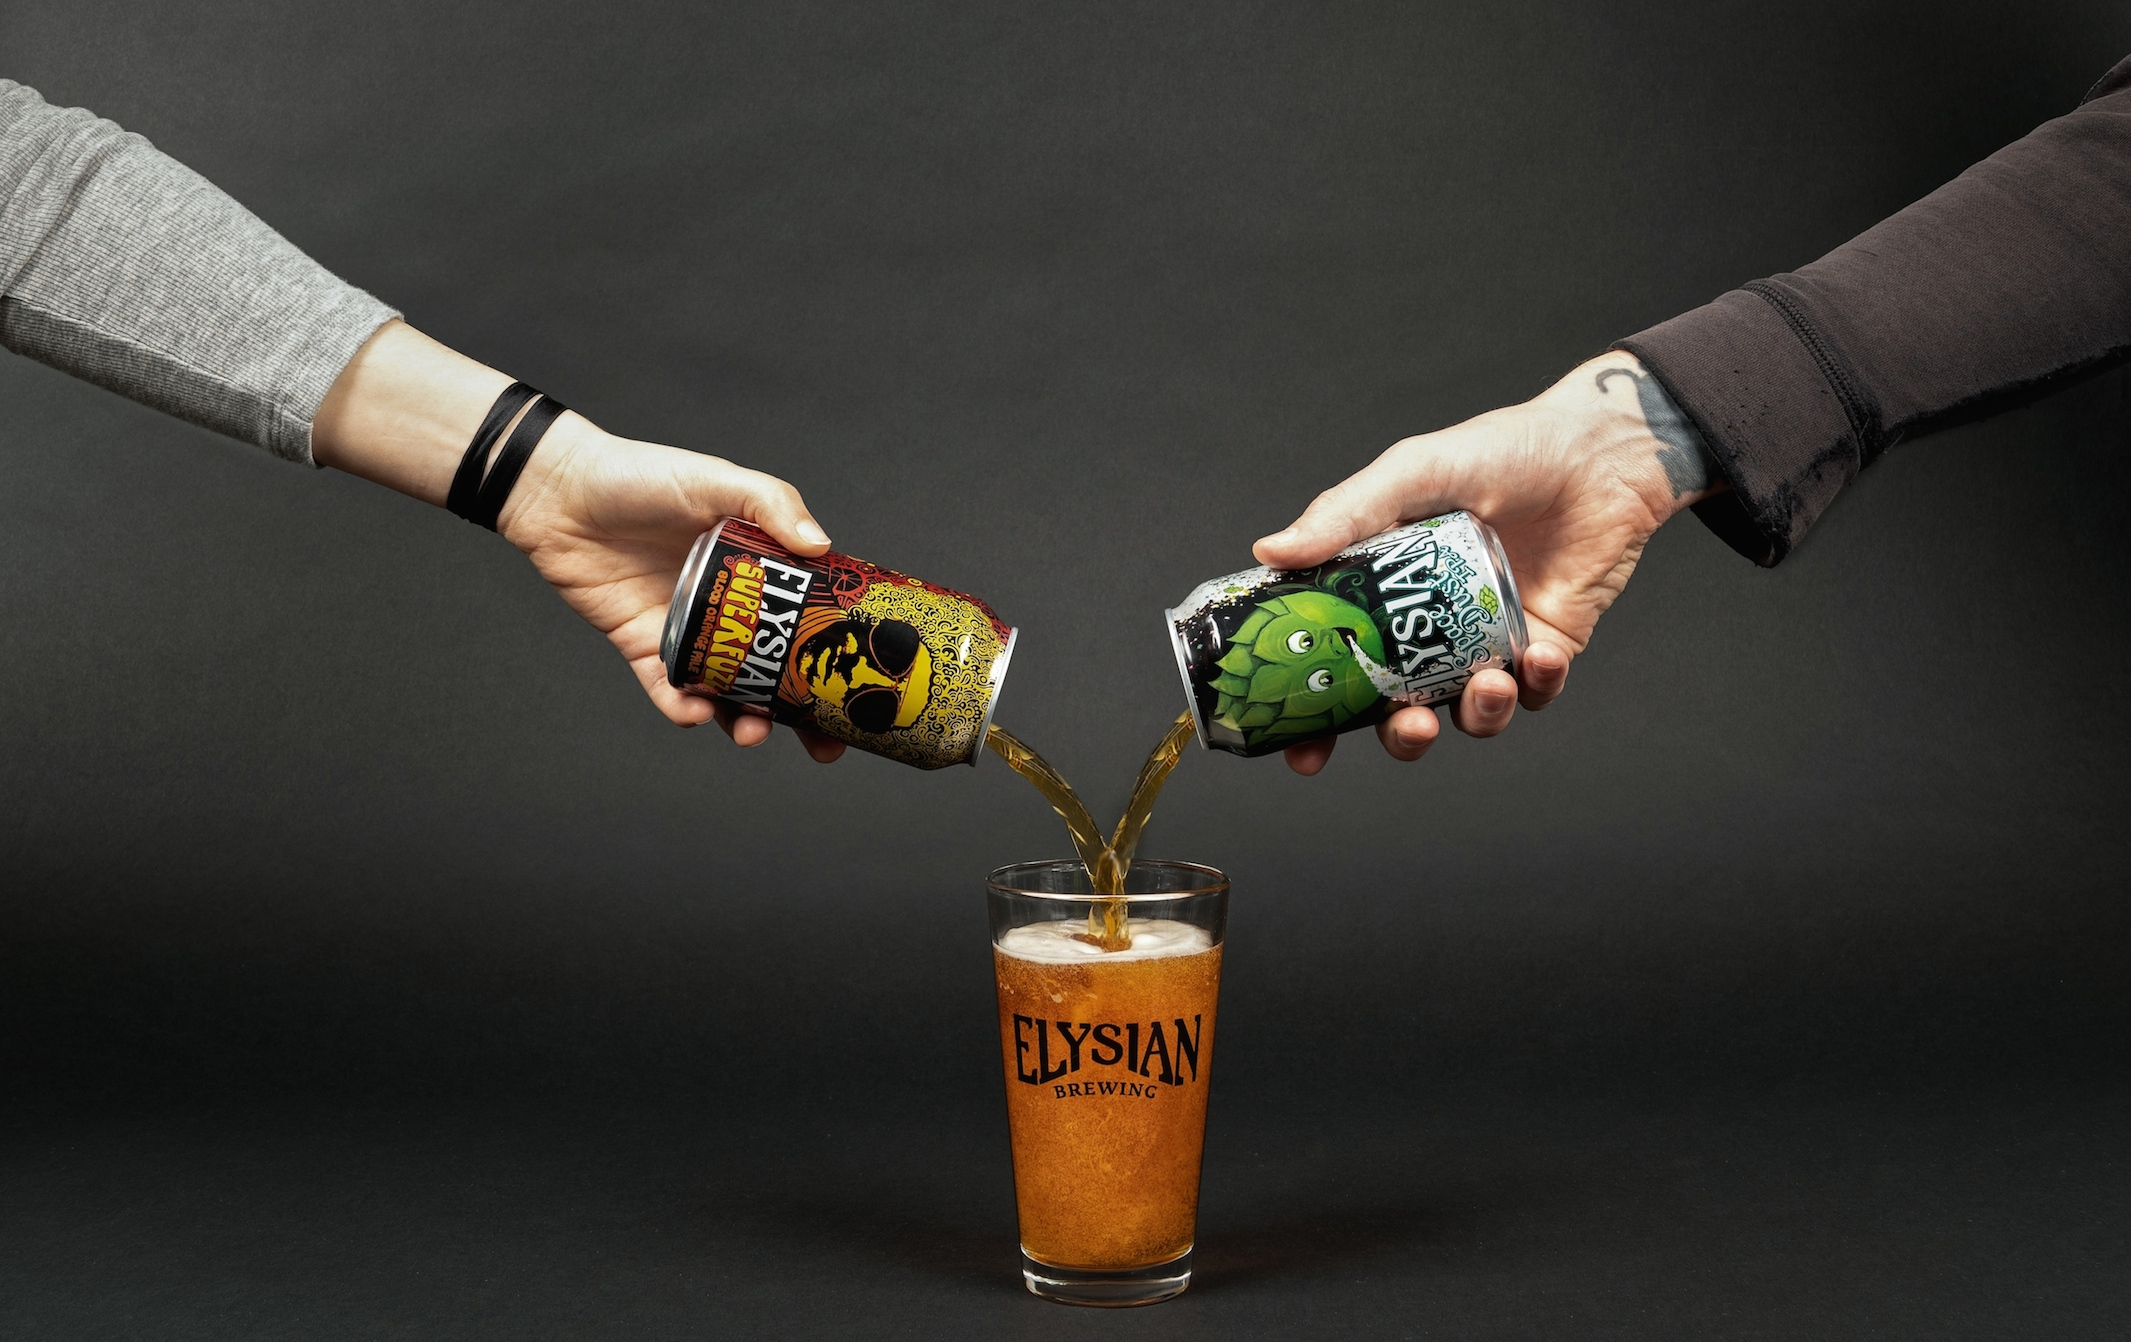 You Only Need Two Ingredients to Make Some of the Best Beer Cocktails